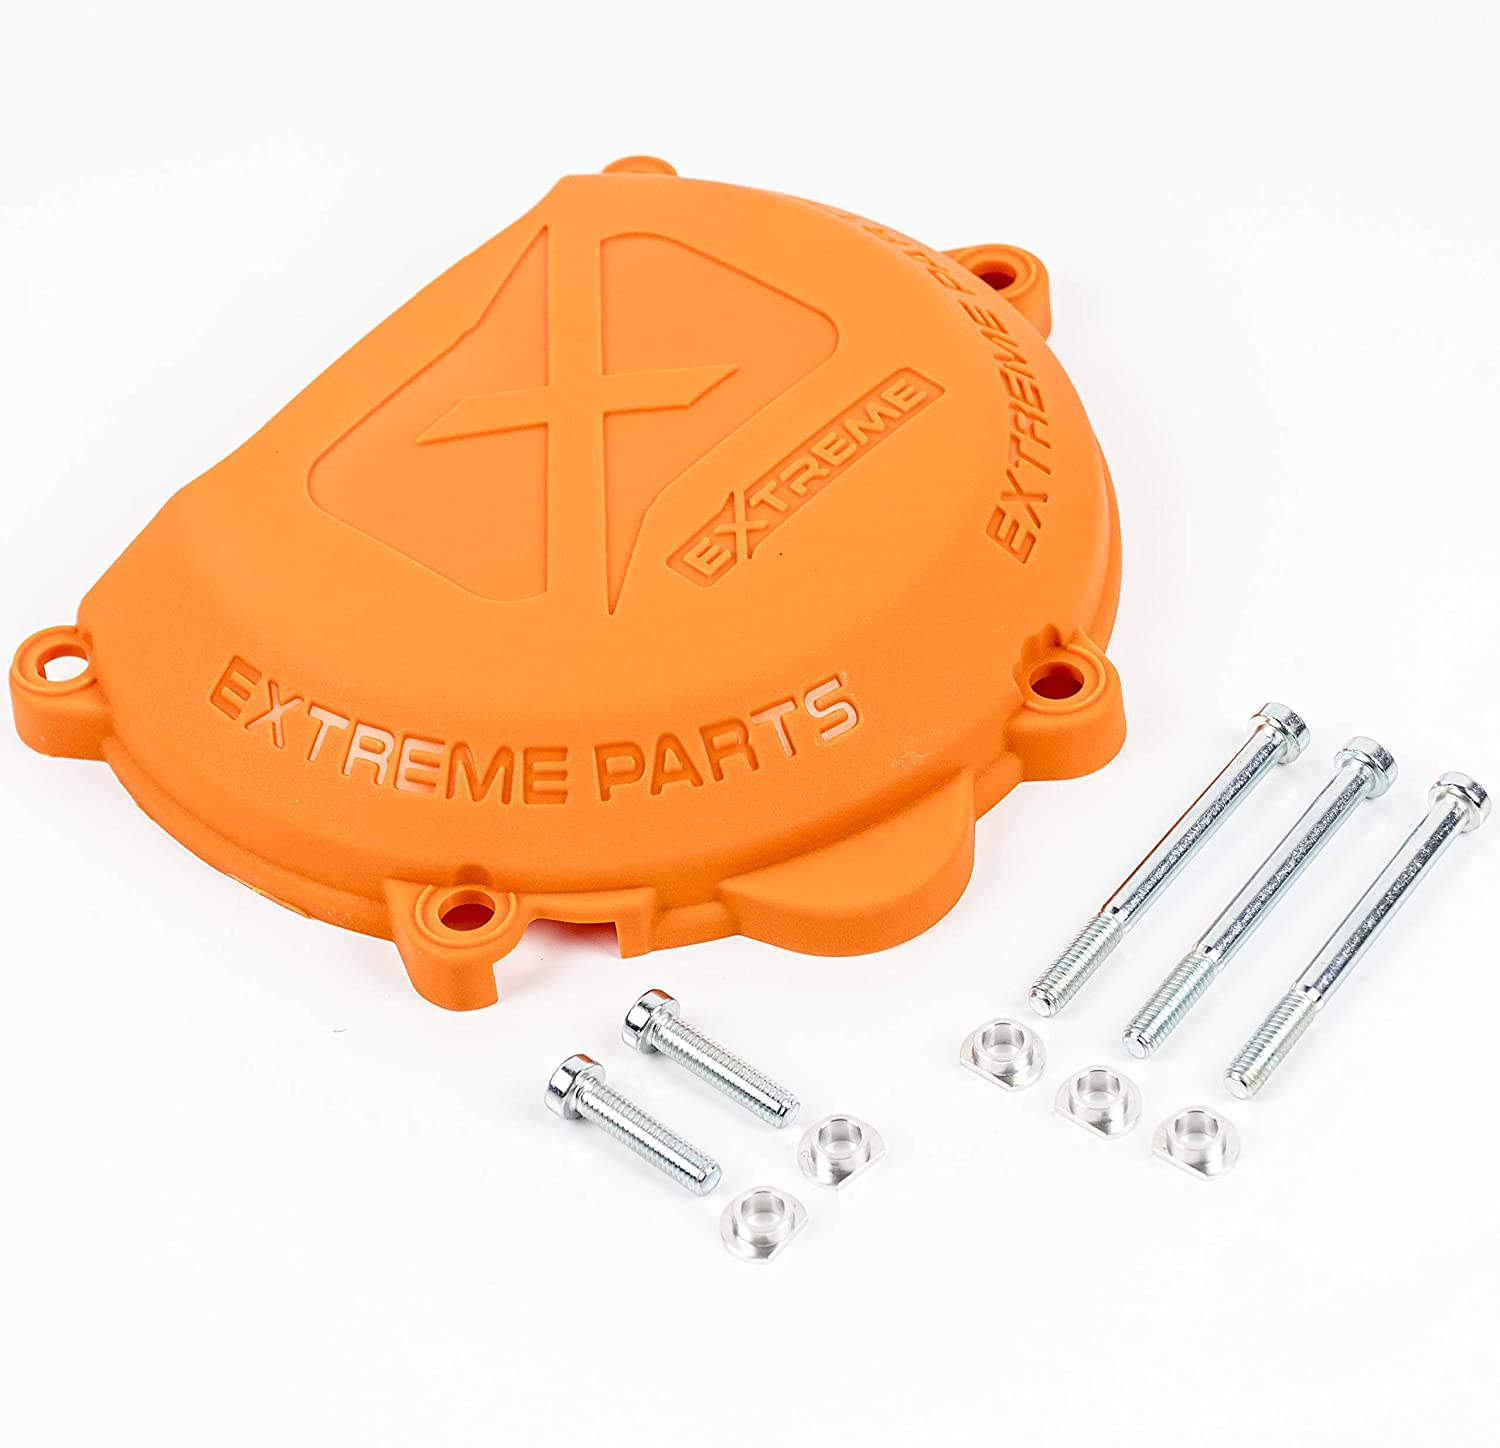 Orange Clutch Cover Protector Guard for 2 Stroke Engine KTM and Husqvarna 250 300 Year 2012-2016 Extreme Parts